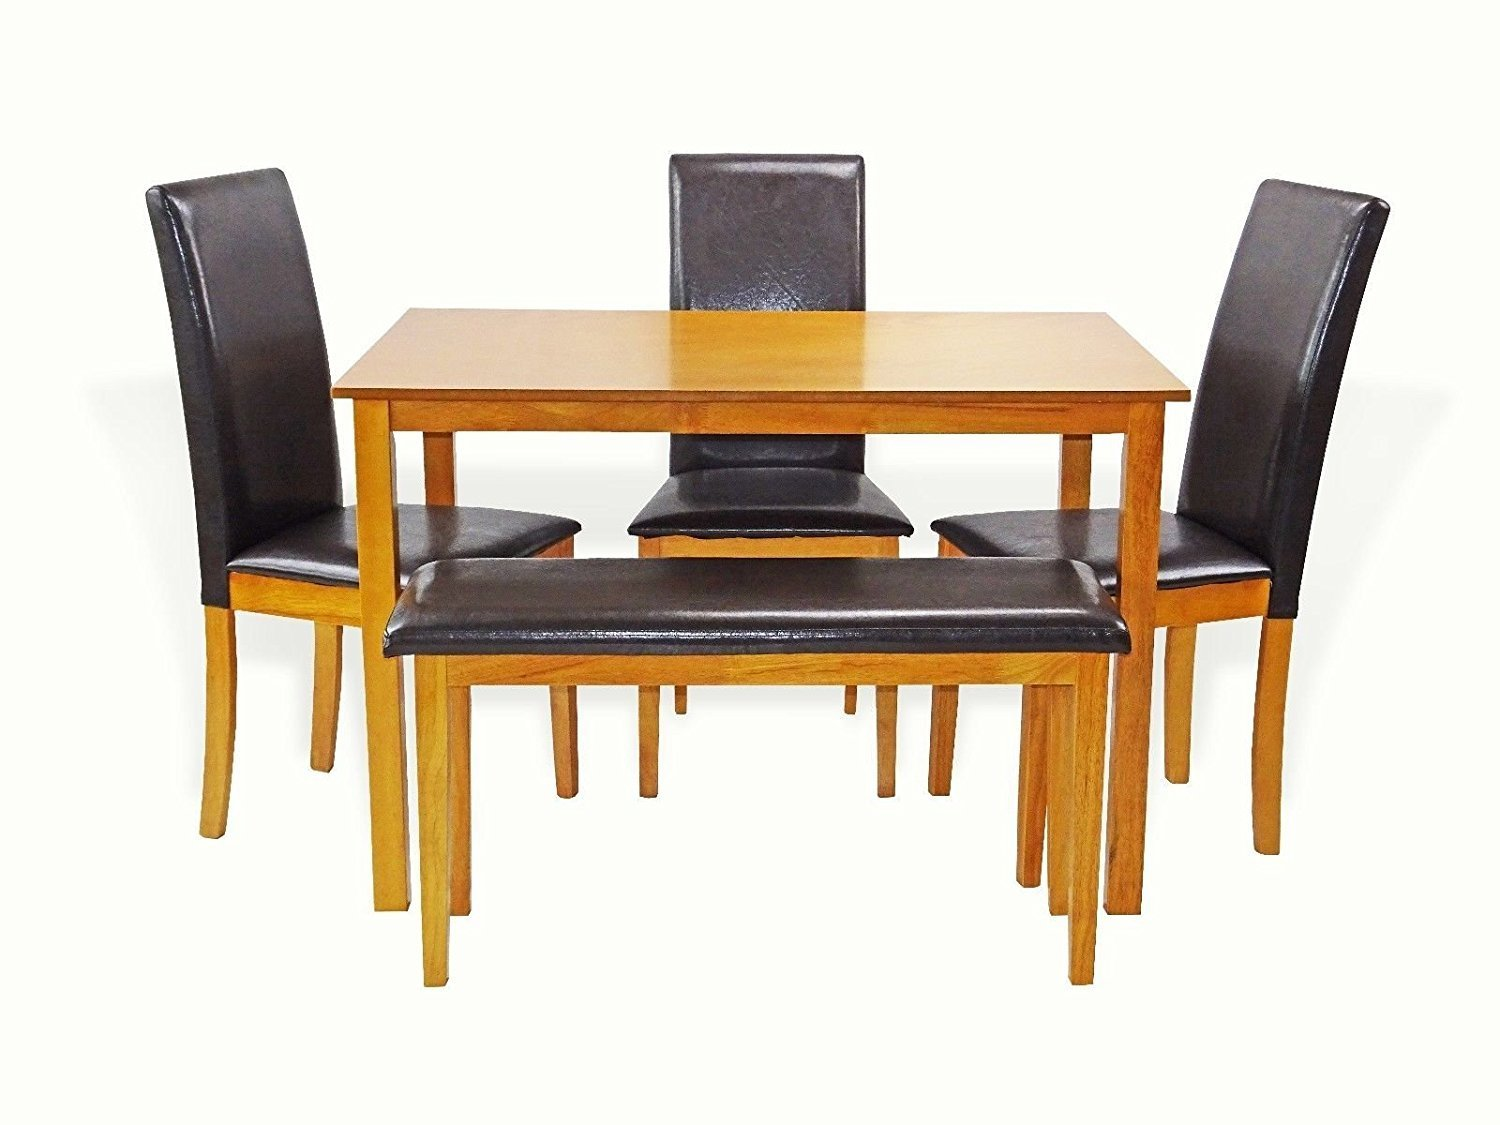 Rattan Wicker Furniture Dining Kitchen Solid Wooden Bench Stained Padded Seat Classic Design in Maple Finish by Rattan Wicker Furniture (Image #7)